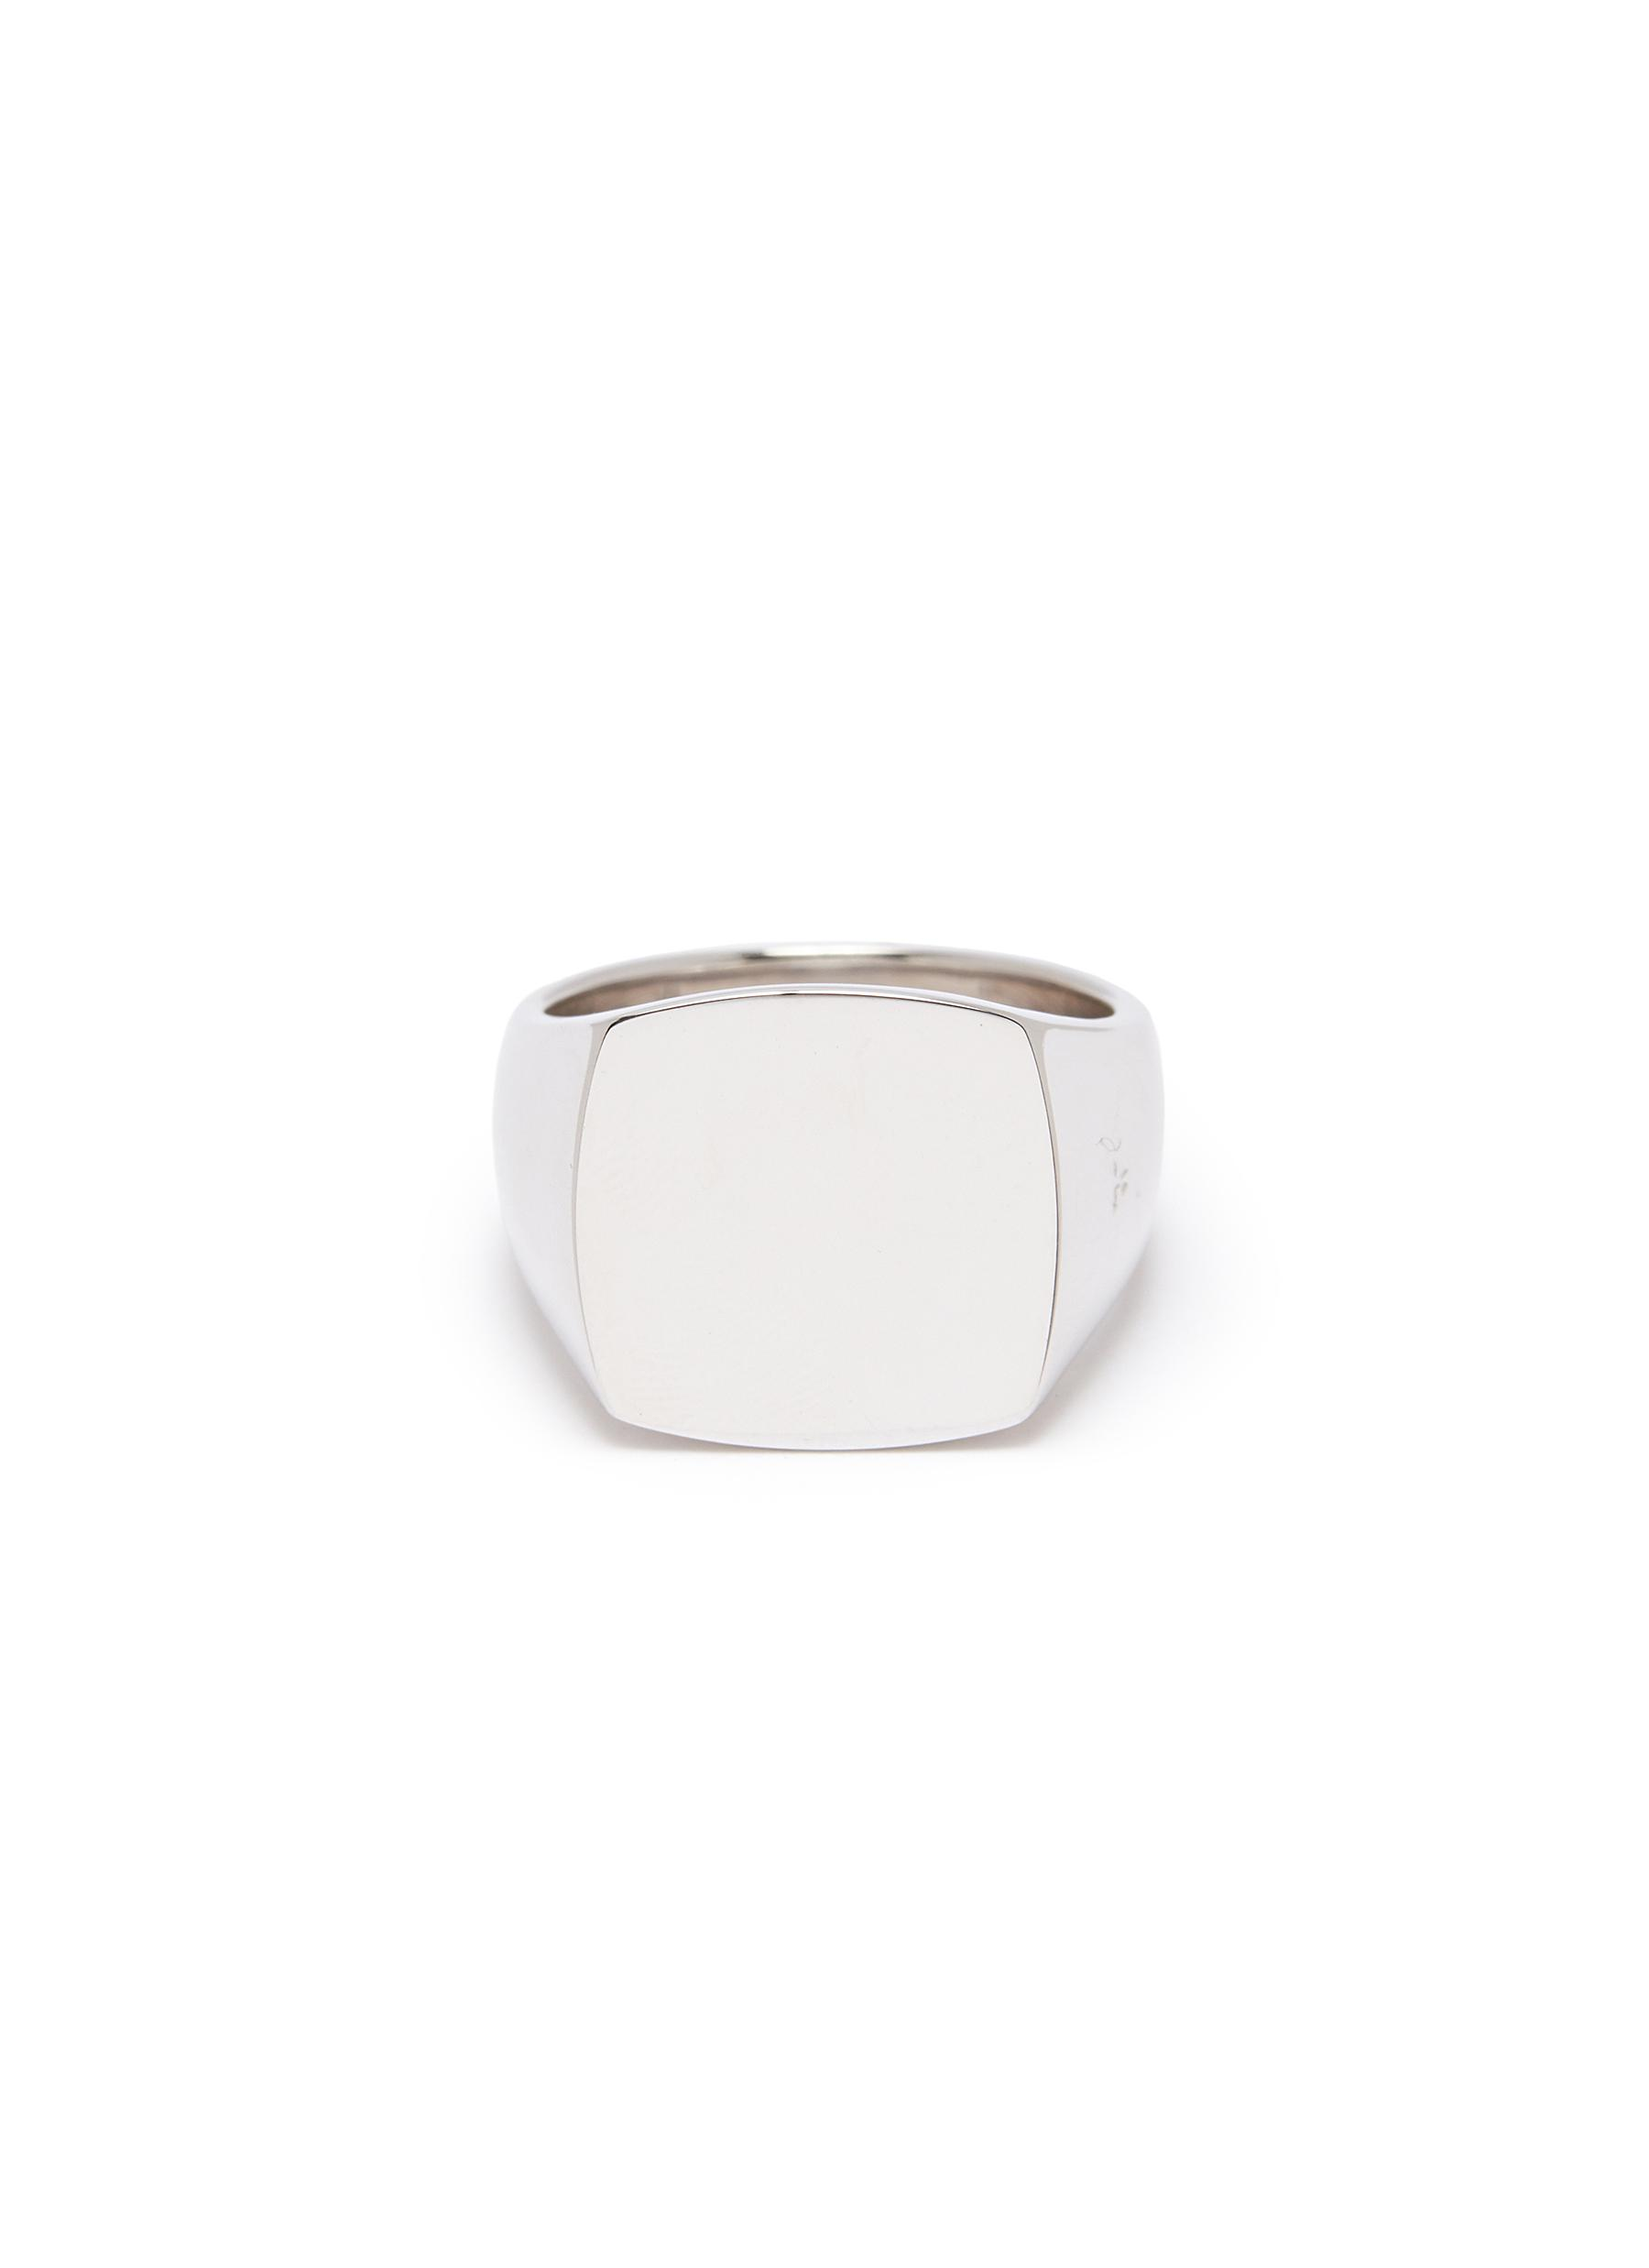 Tom Wood Accessories 'Cushion Polished' silver signet ring – Size 60